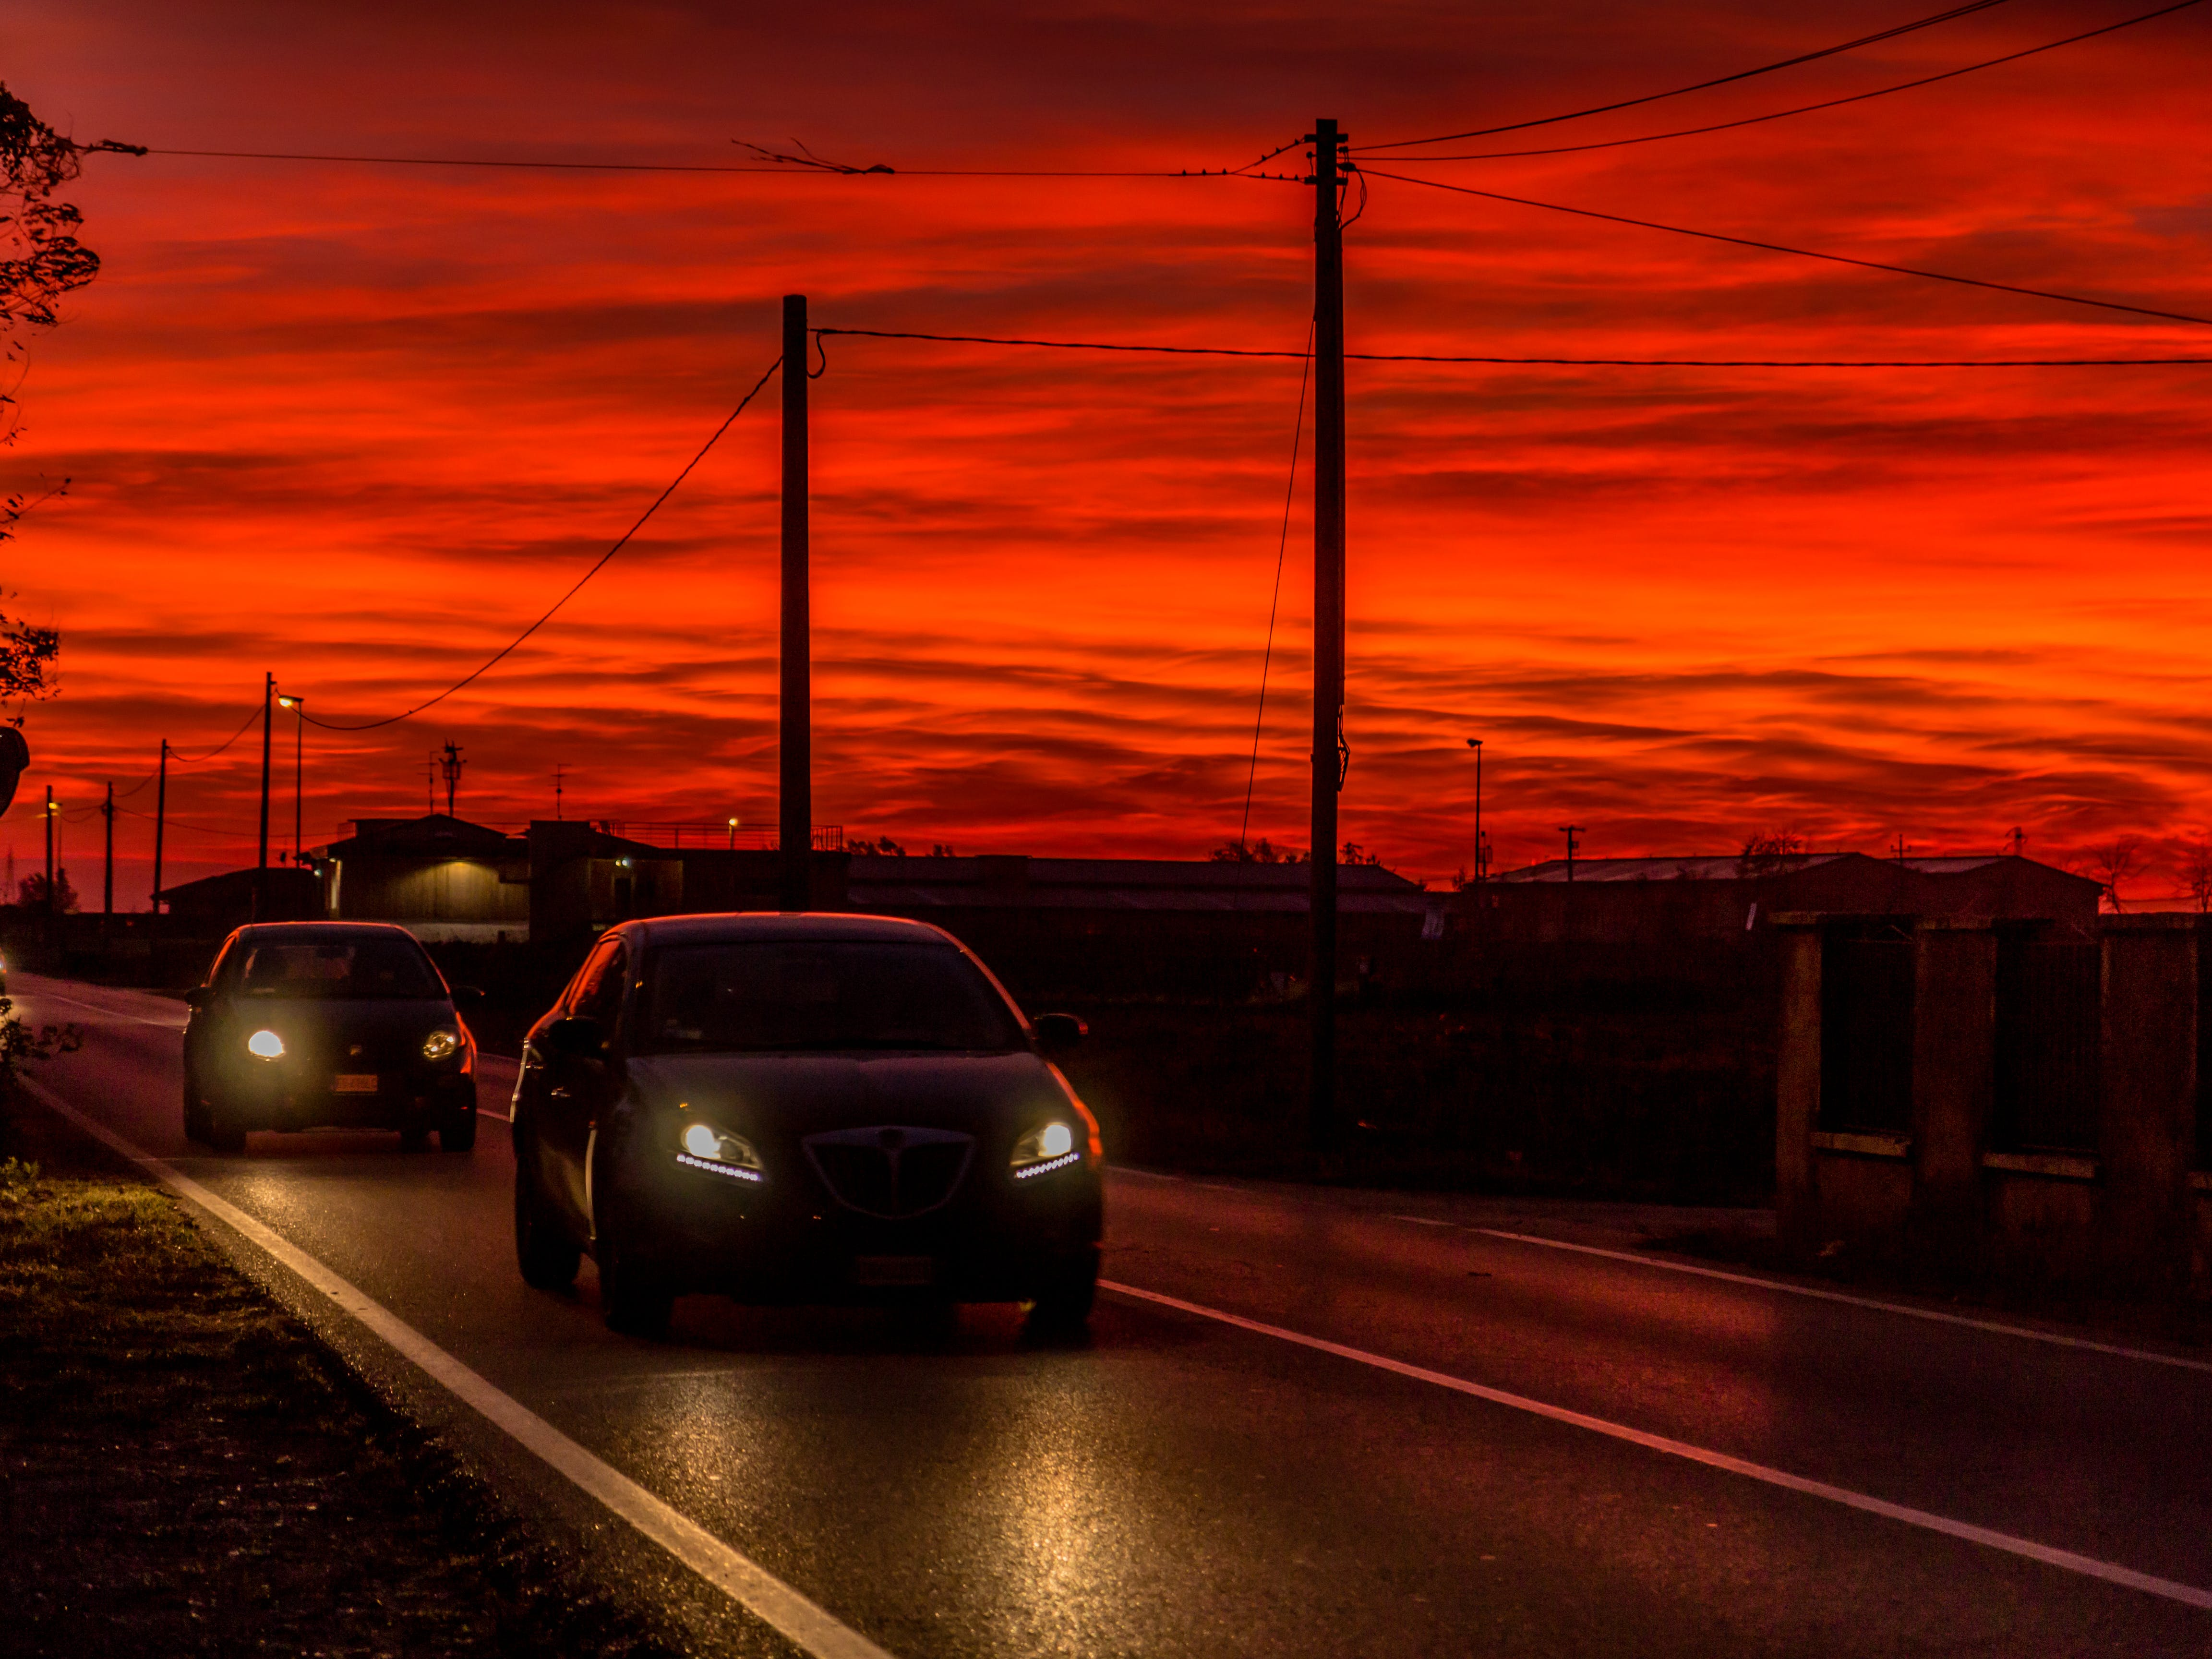 Two Cars On Road During Golden Hour